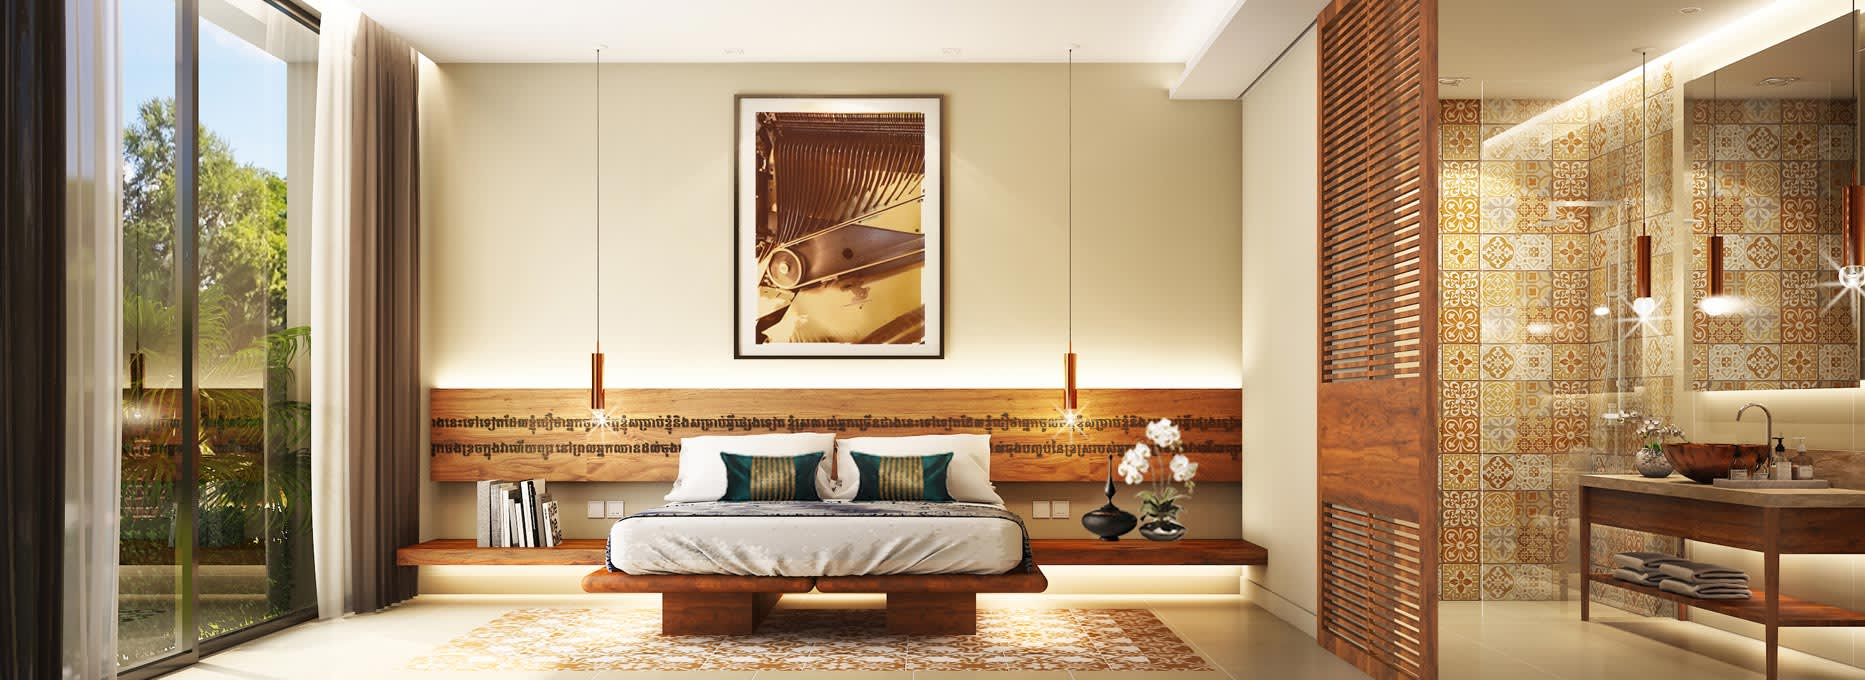 Deluxe Room at FCC Angkor, Managed by Avani Hotels & Resorts